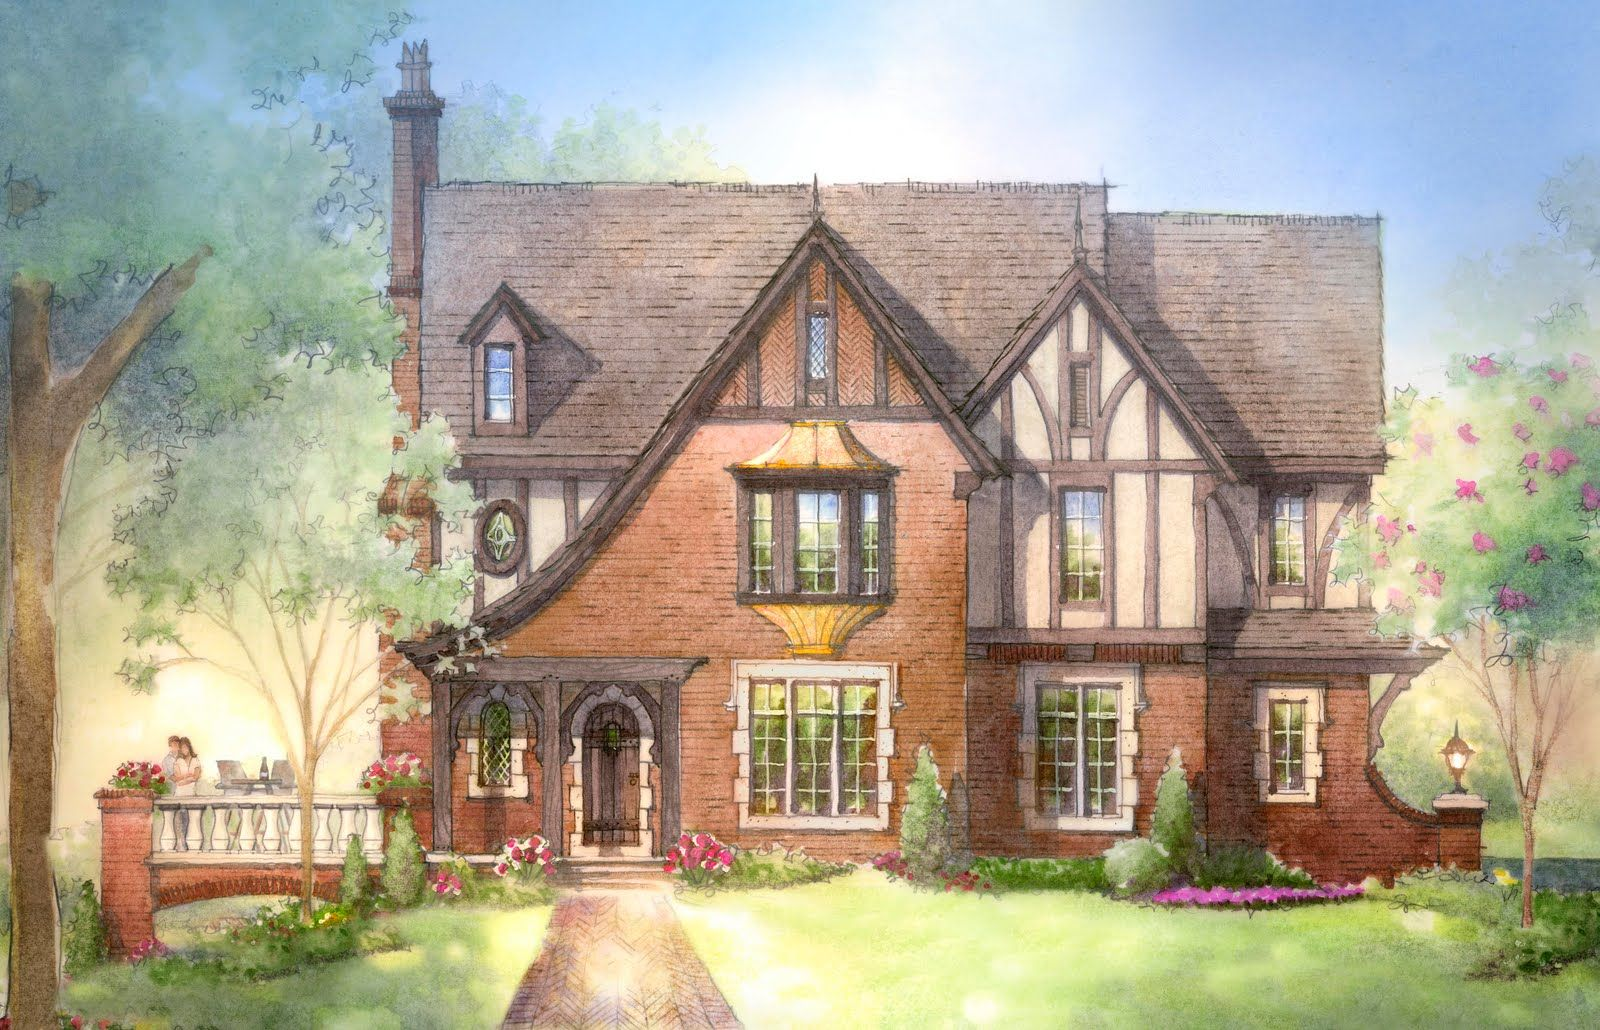 This ridiculously close to what i imagined as my dream for English cottage style home plans